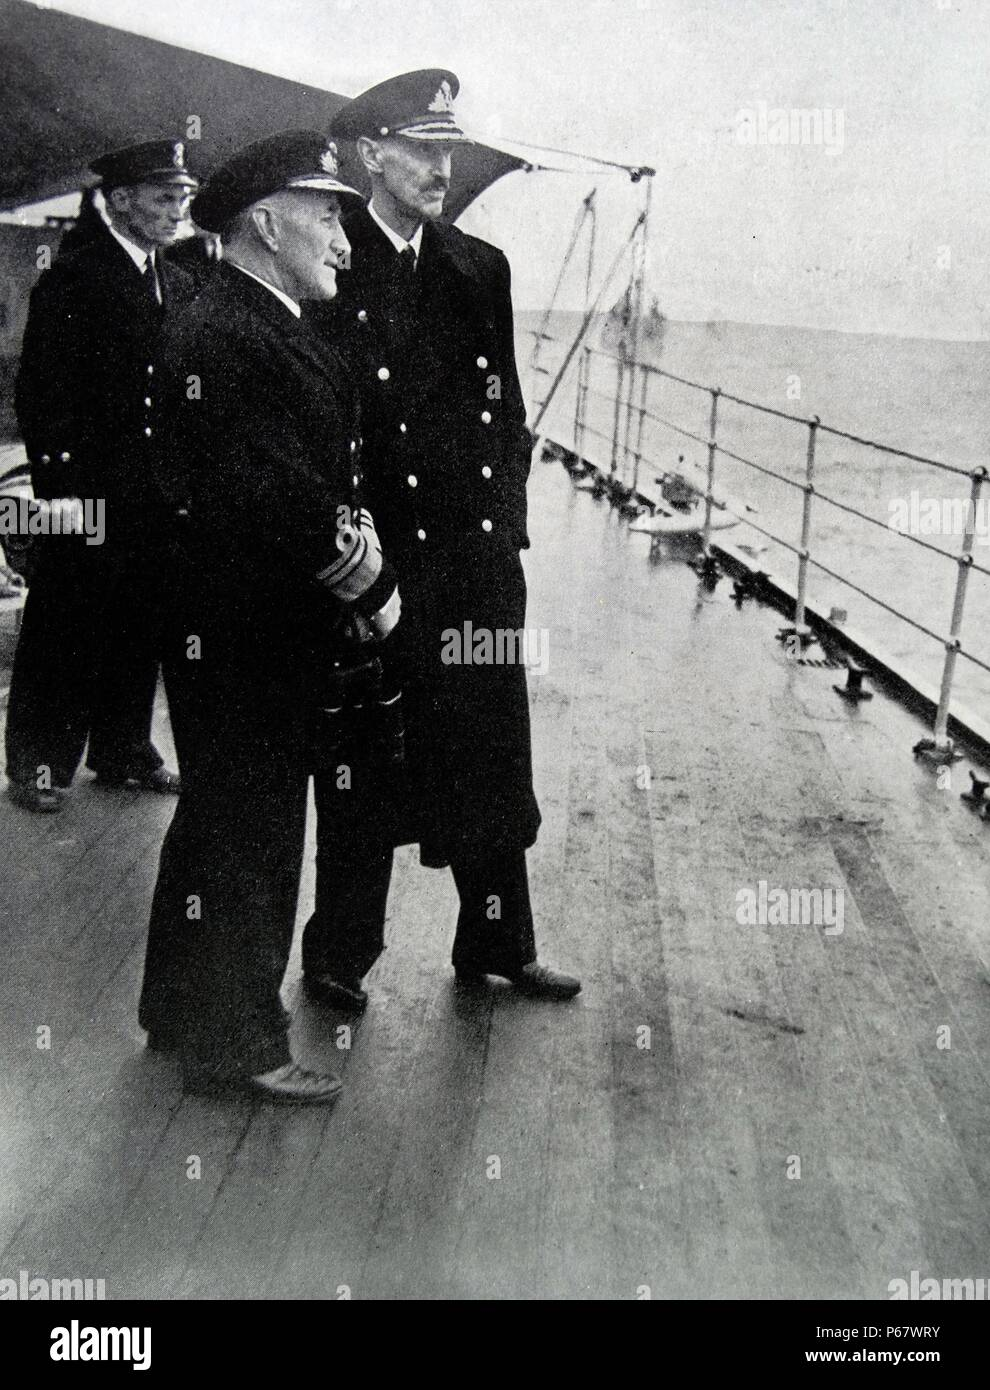 King Haakon VII and the Royal Family of Norway return on the HMS Norfolk after the liberation of Norway after World War Two - Stock Image